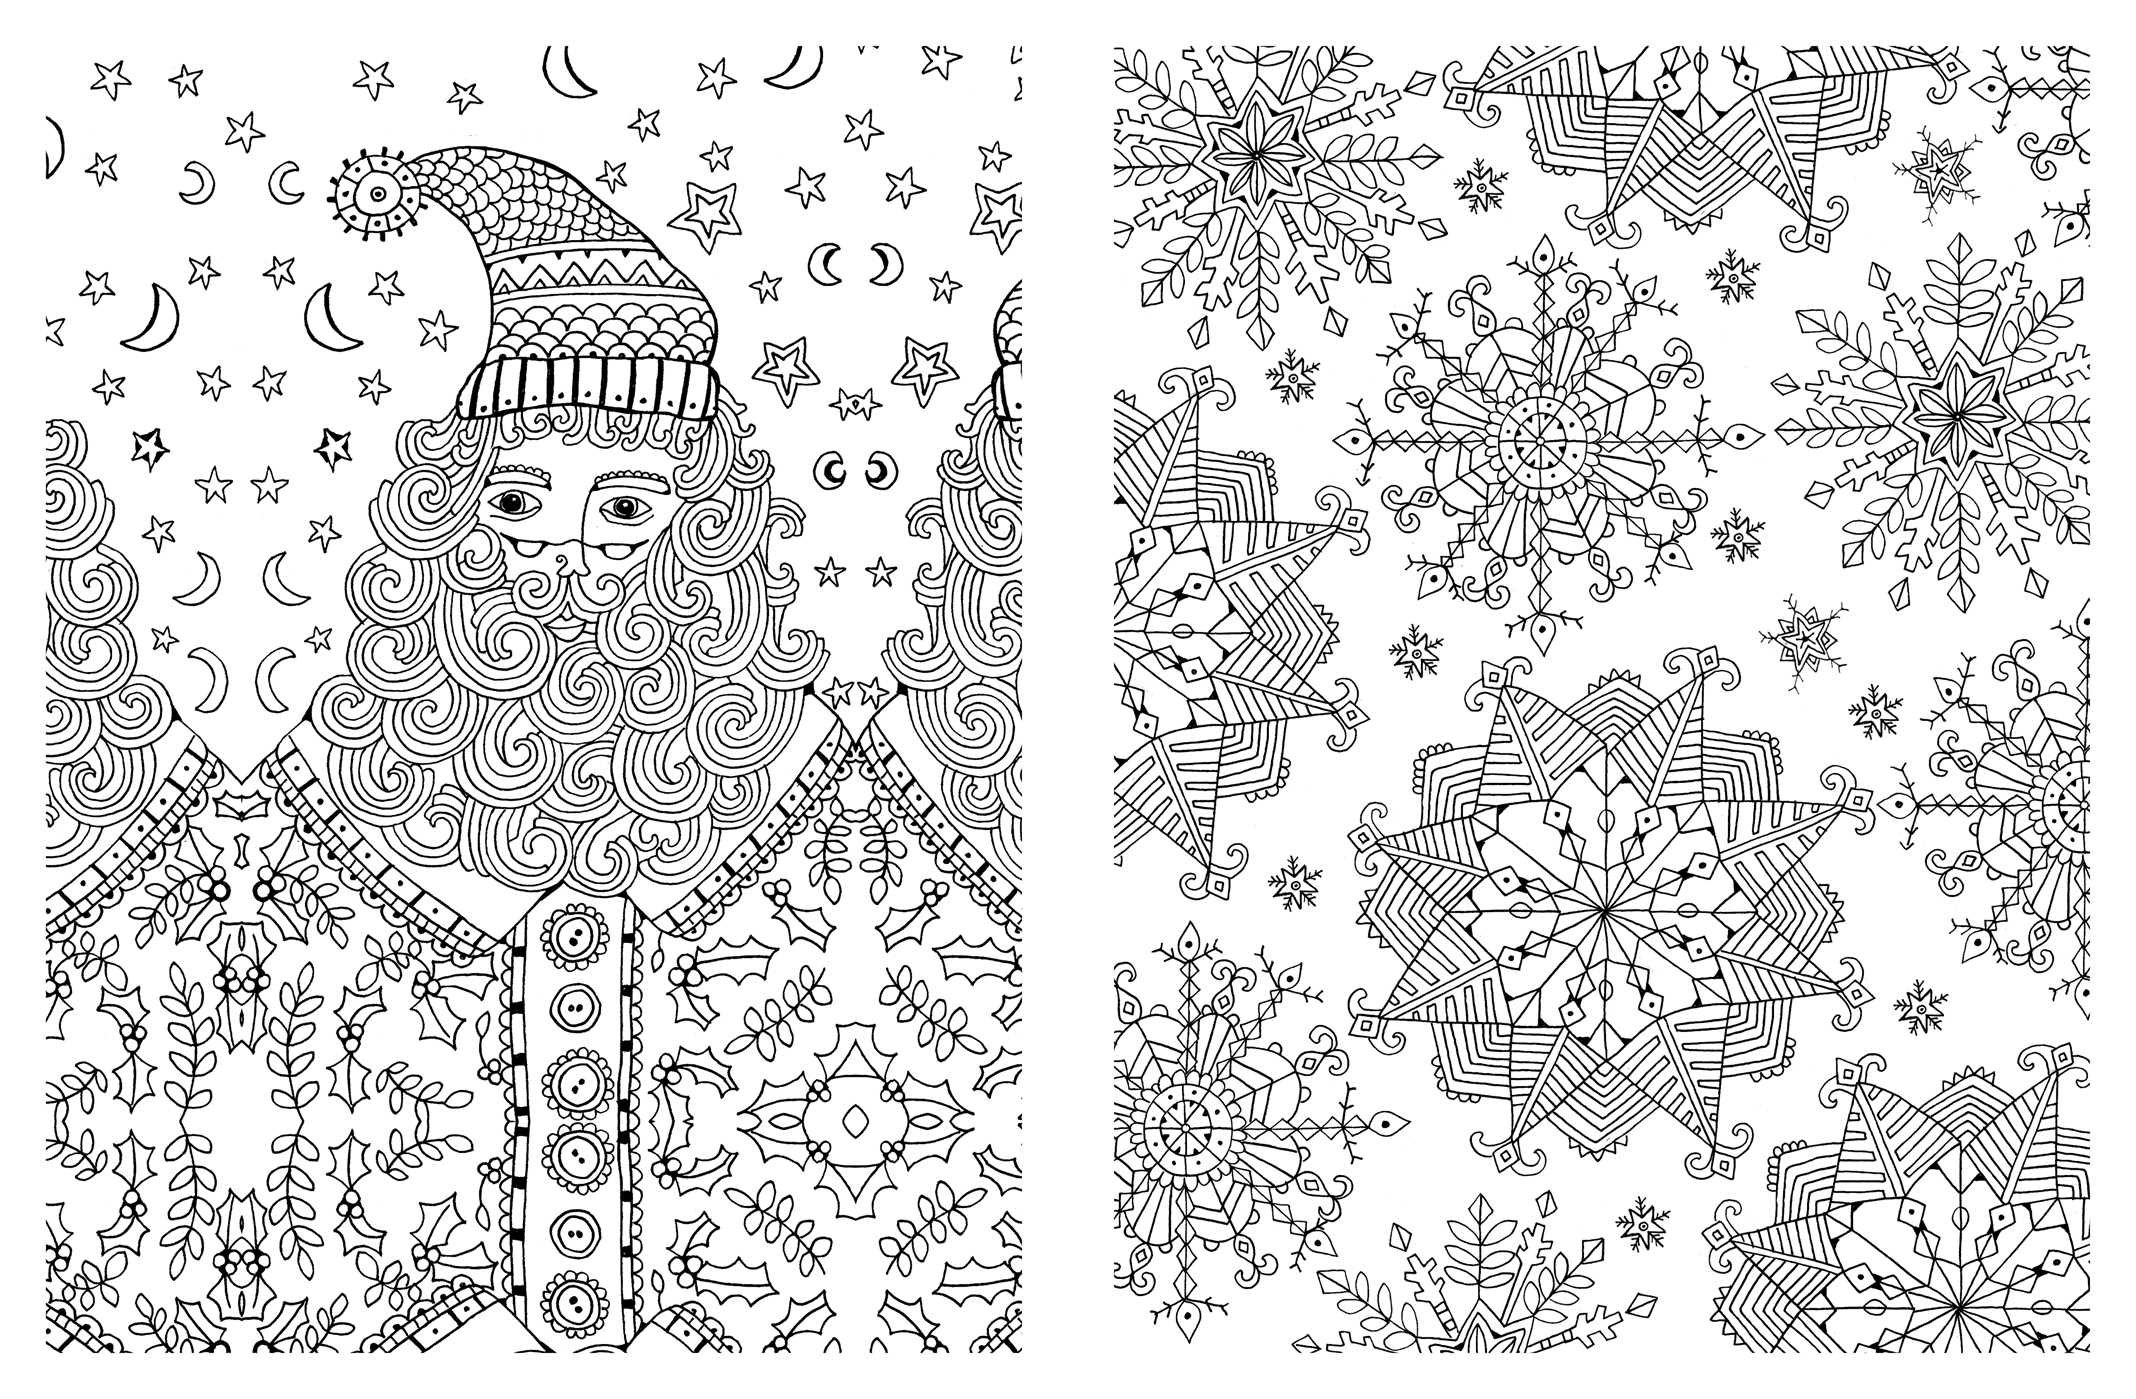 Posh Adult Coloring Book Christmas Designs For Fun Relaxation Amazonca Andrews McMeel Publishing Books